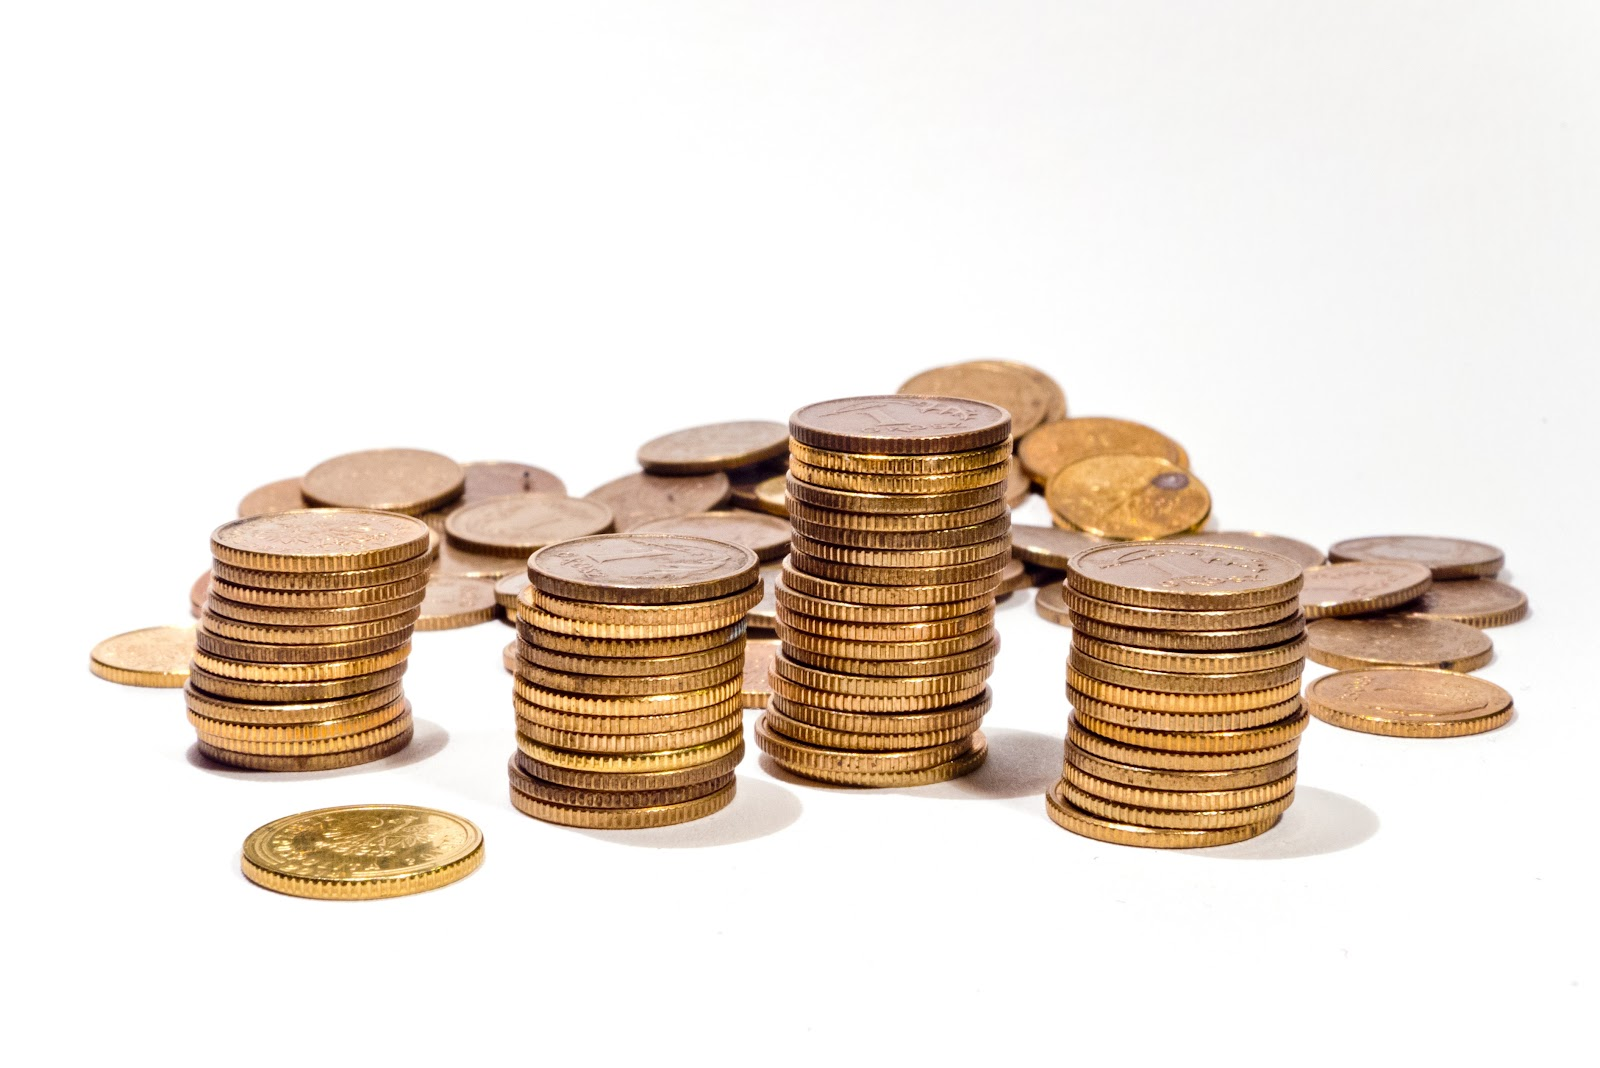 stack of coins on a white background